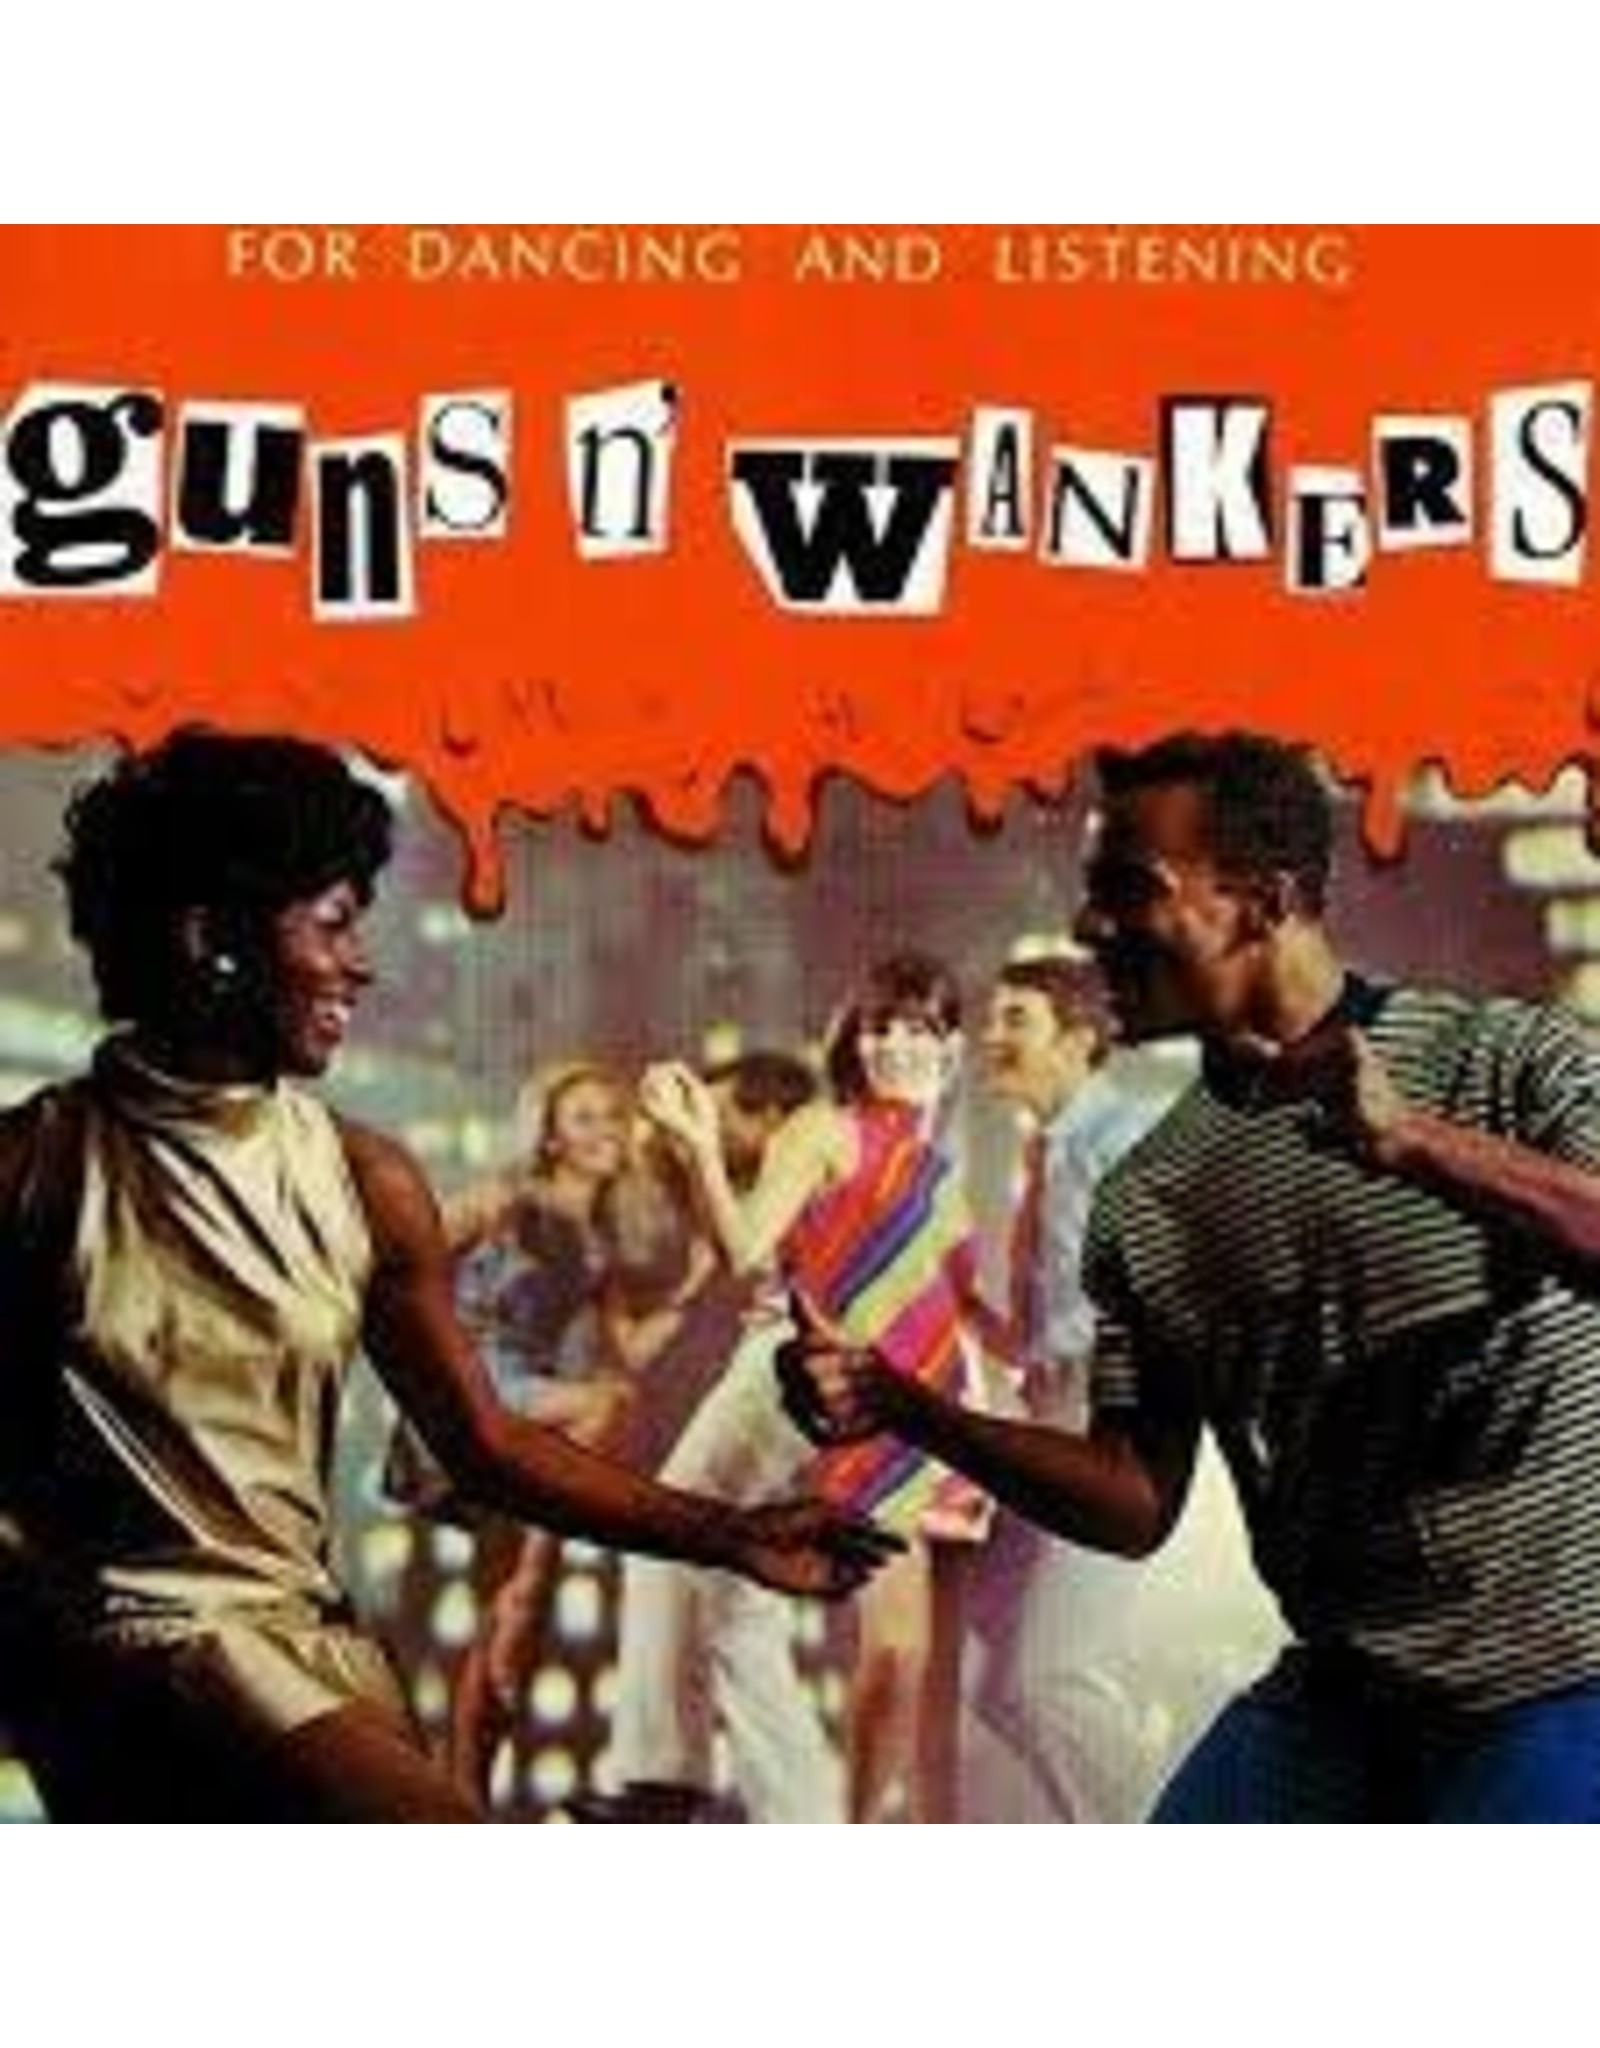 Guns 'n' Wankers - For Dancing And Listening (EP) 10""